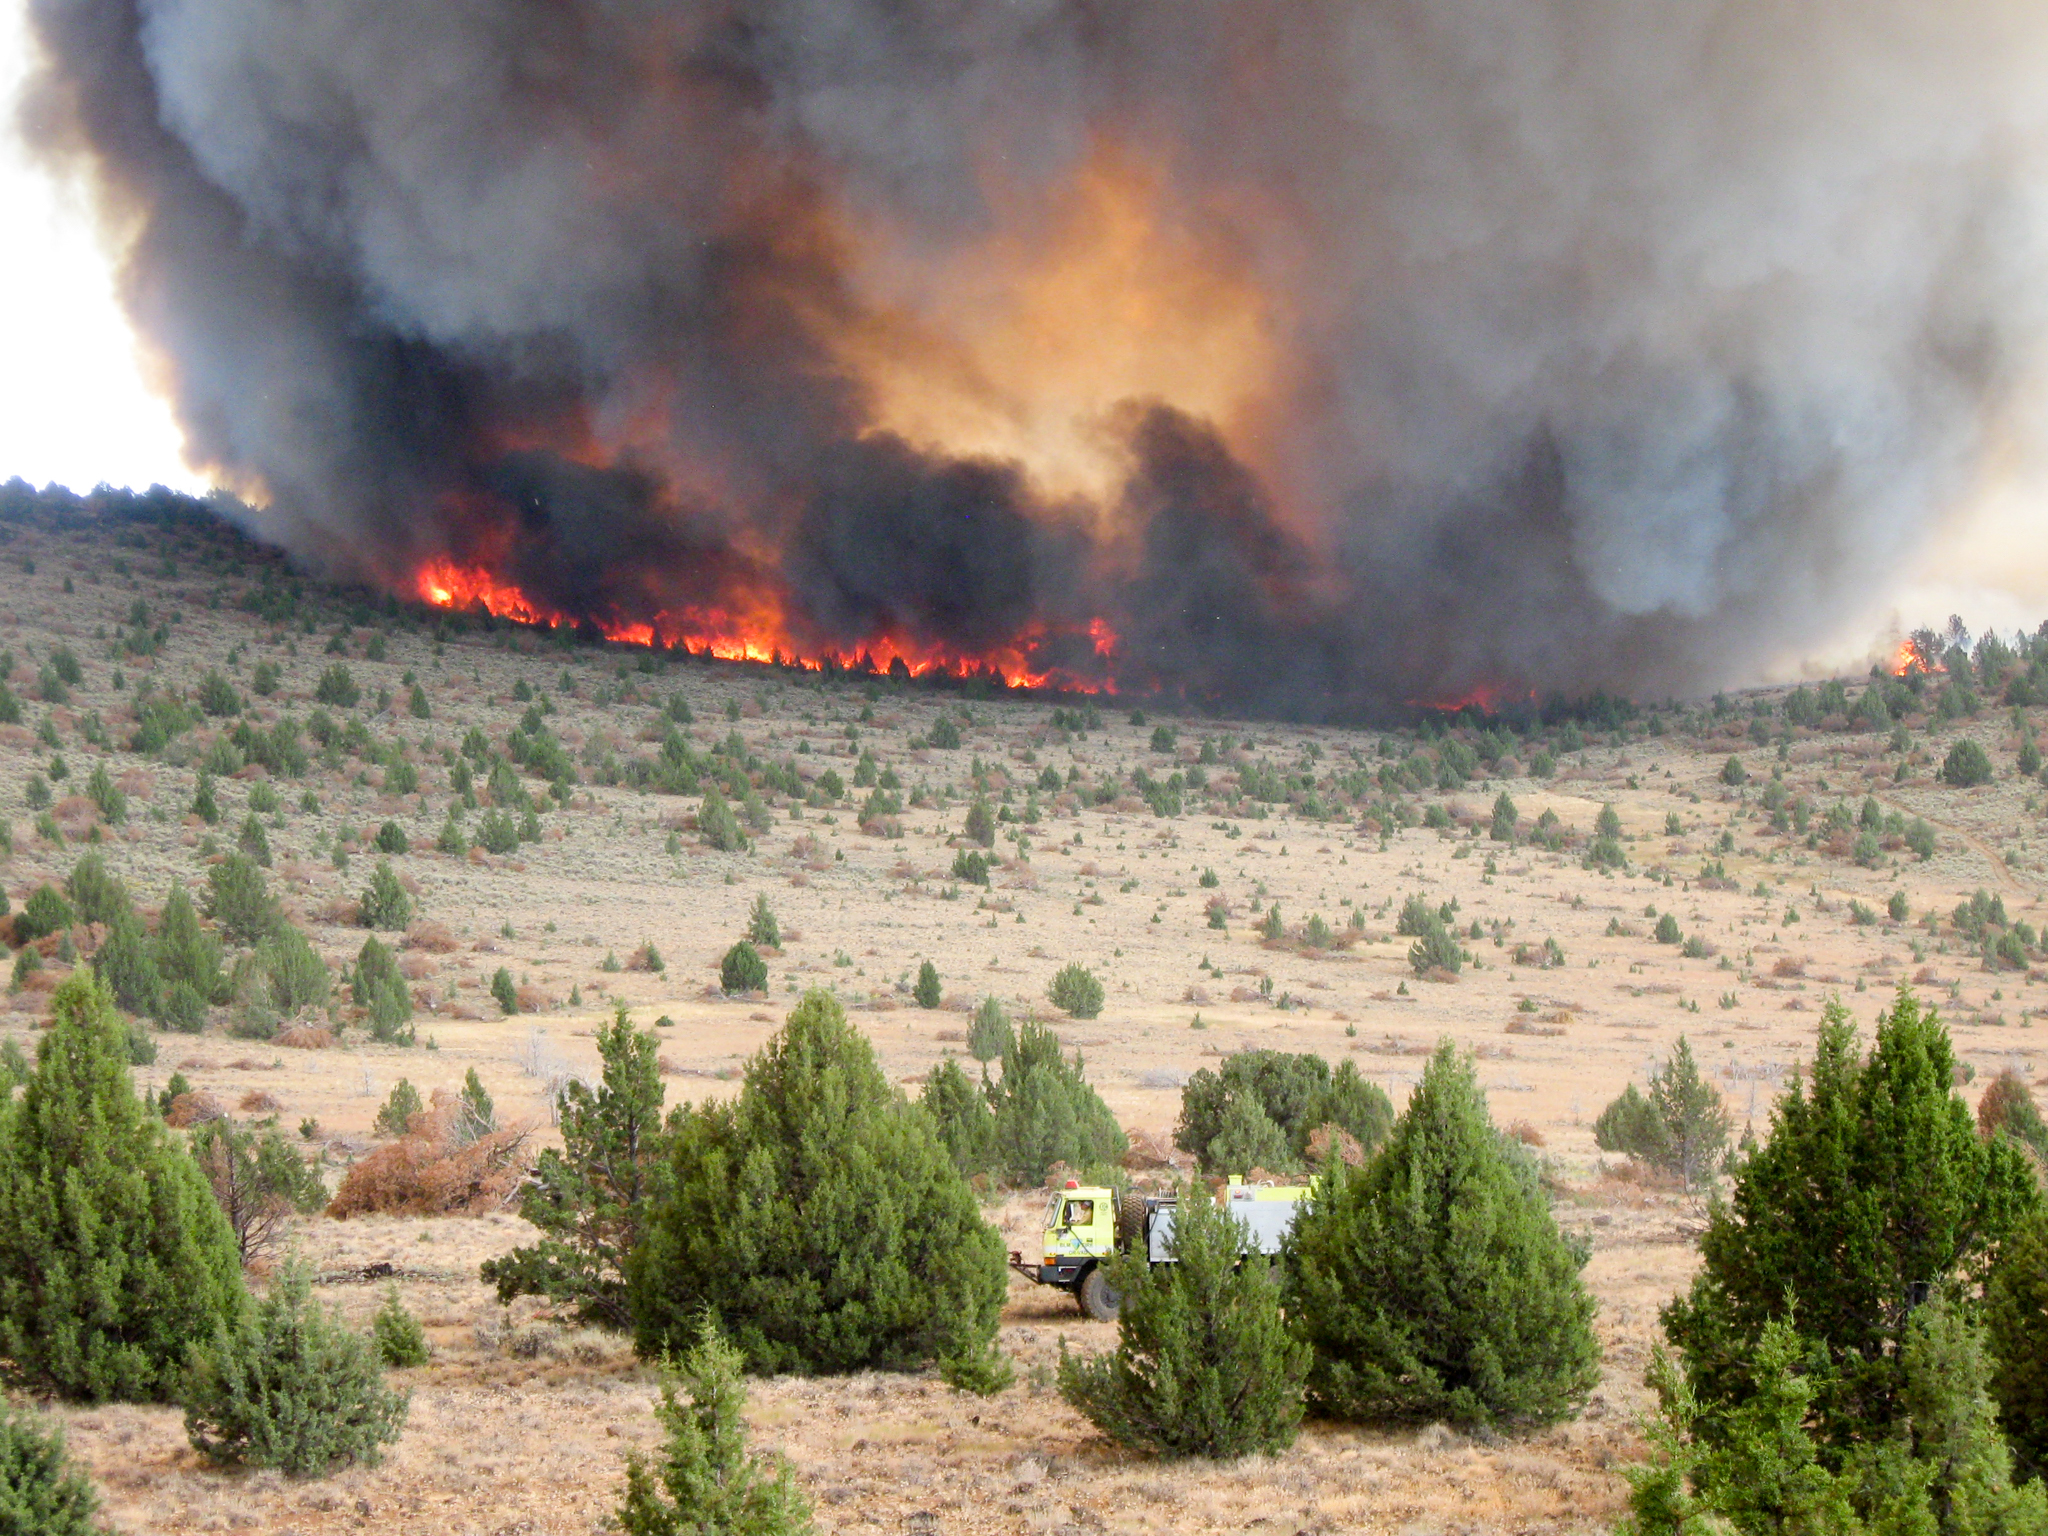 Bureau of Land Management crews monitor a controlled burn intended to restore the sagebrush steppe ecosystem in the Five Creeks area of eastern Oregon. Photograph by Travis Miller